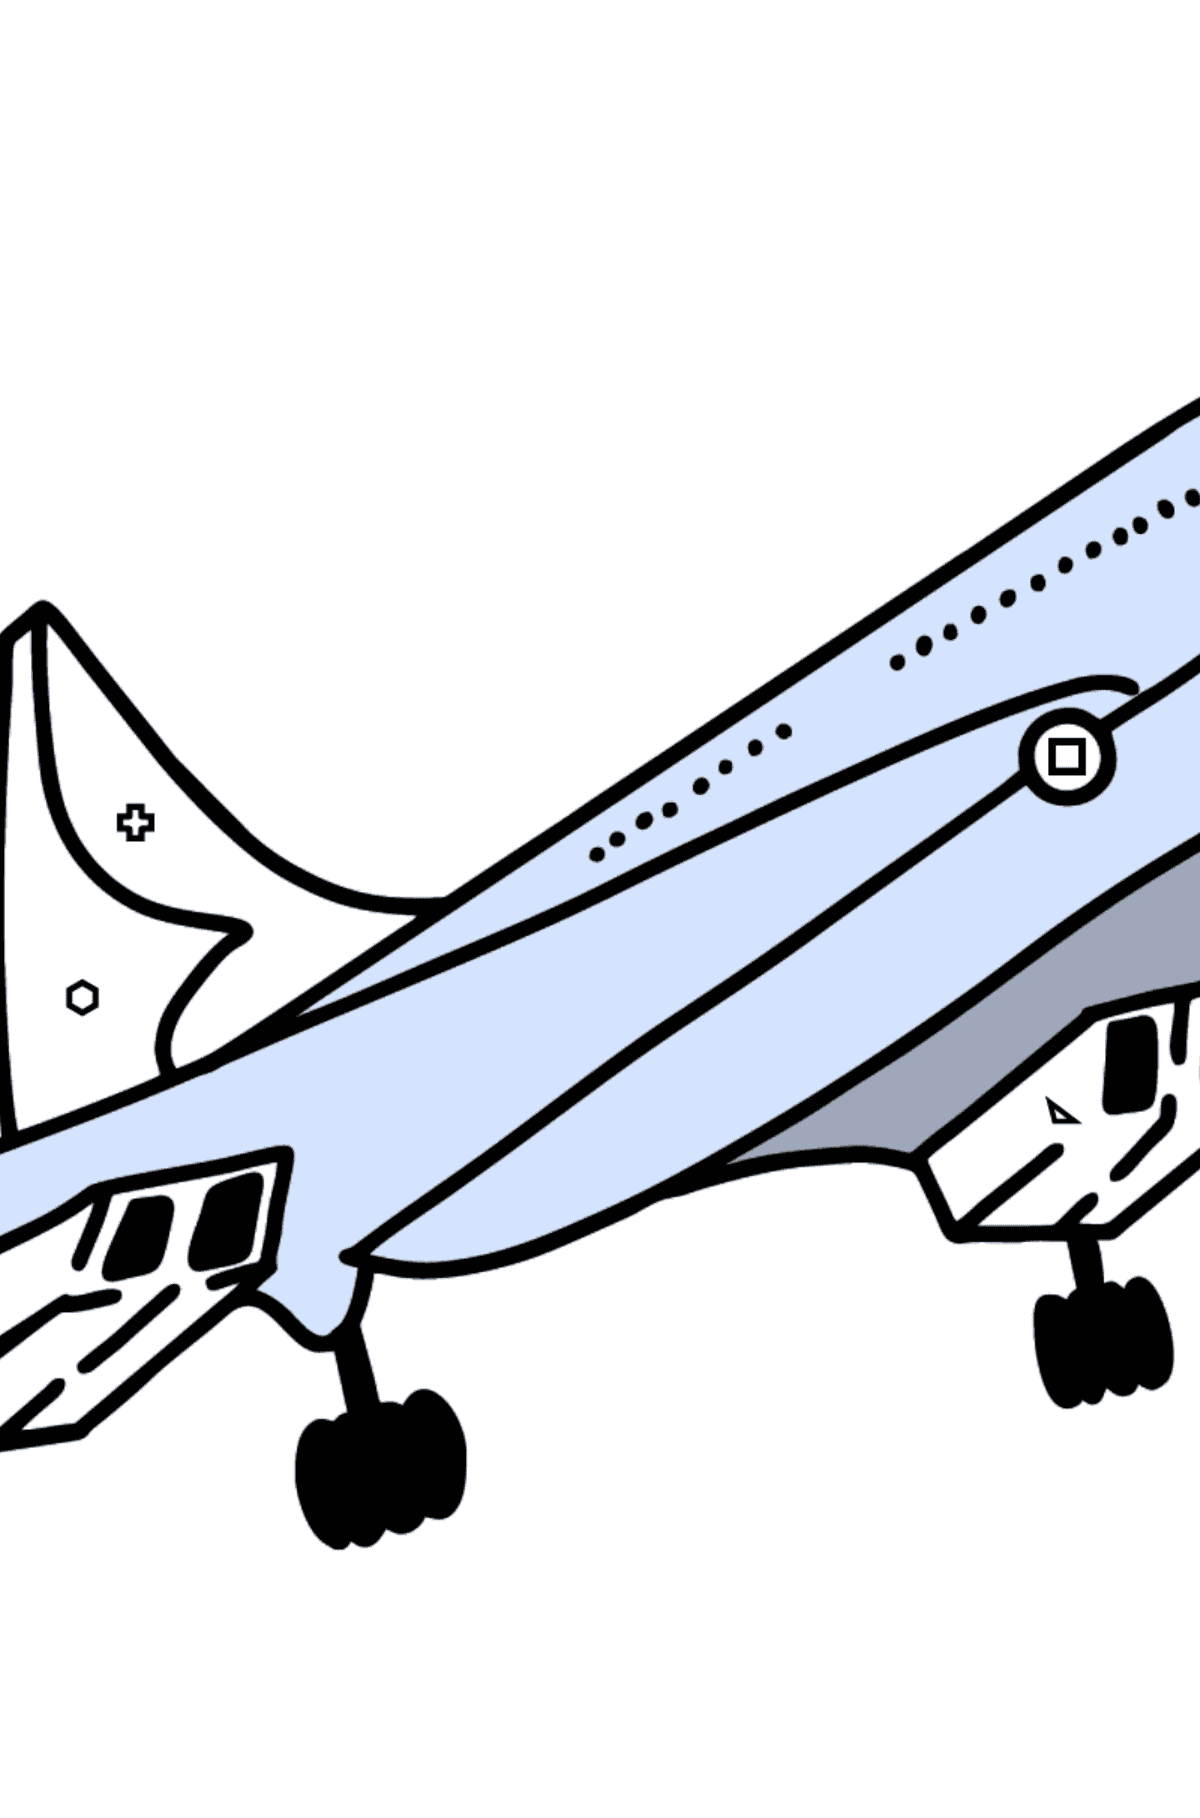 Concorde coloring page - Coloring by Geometric Shapes for Kids